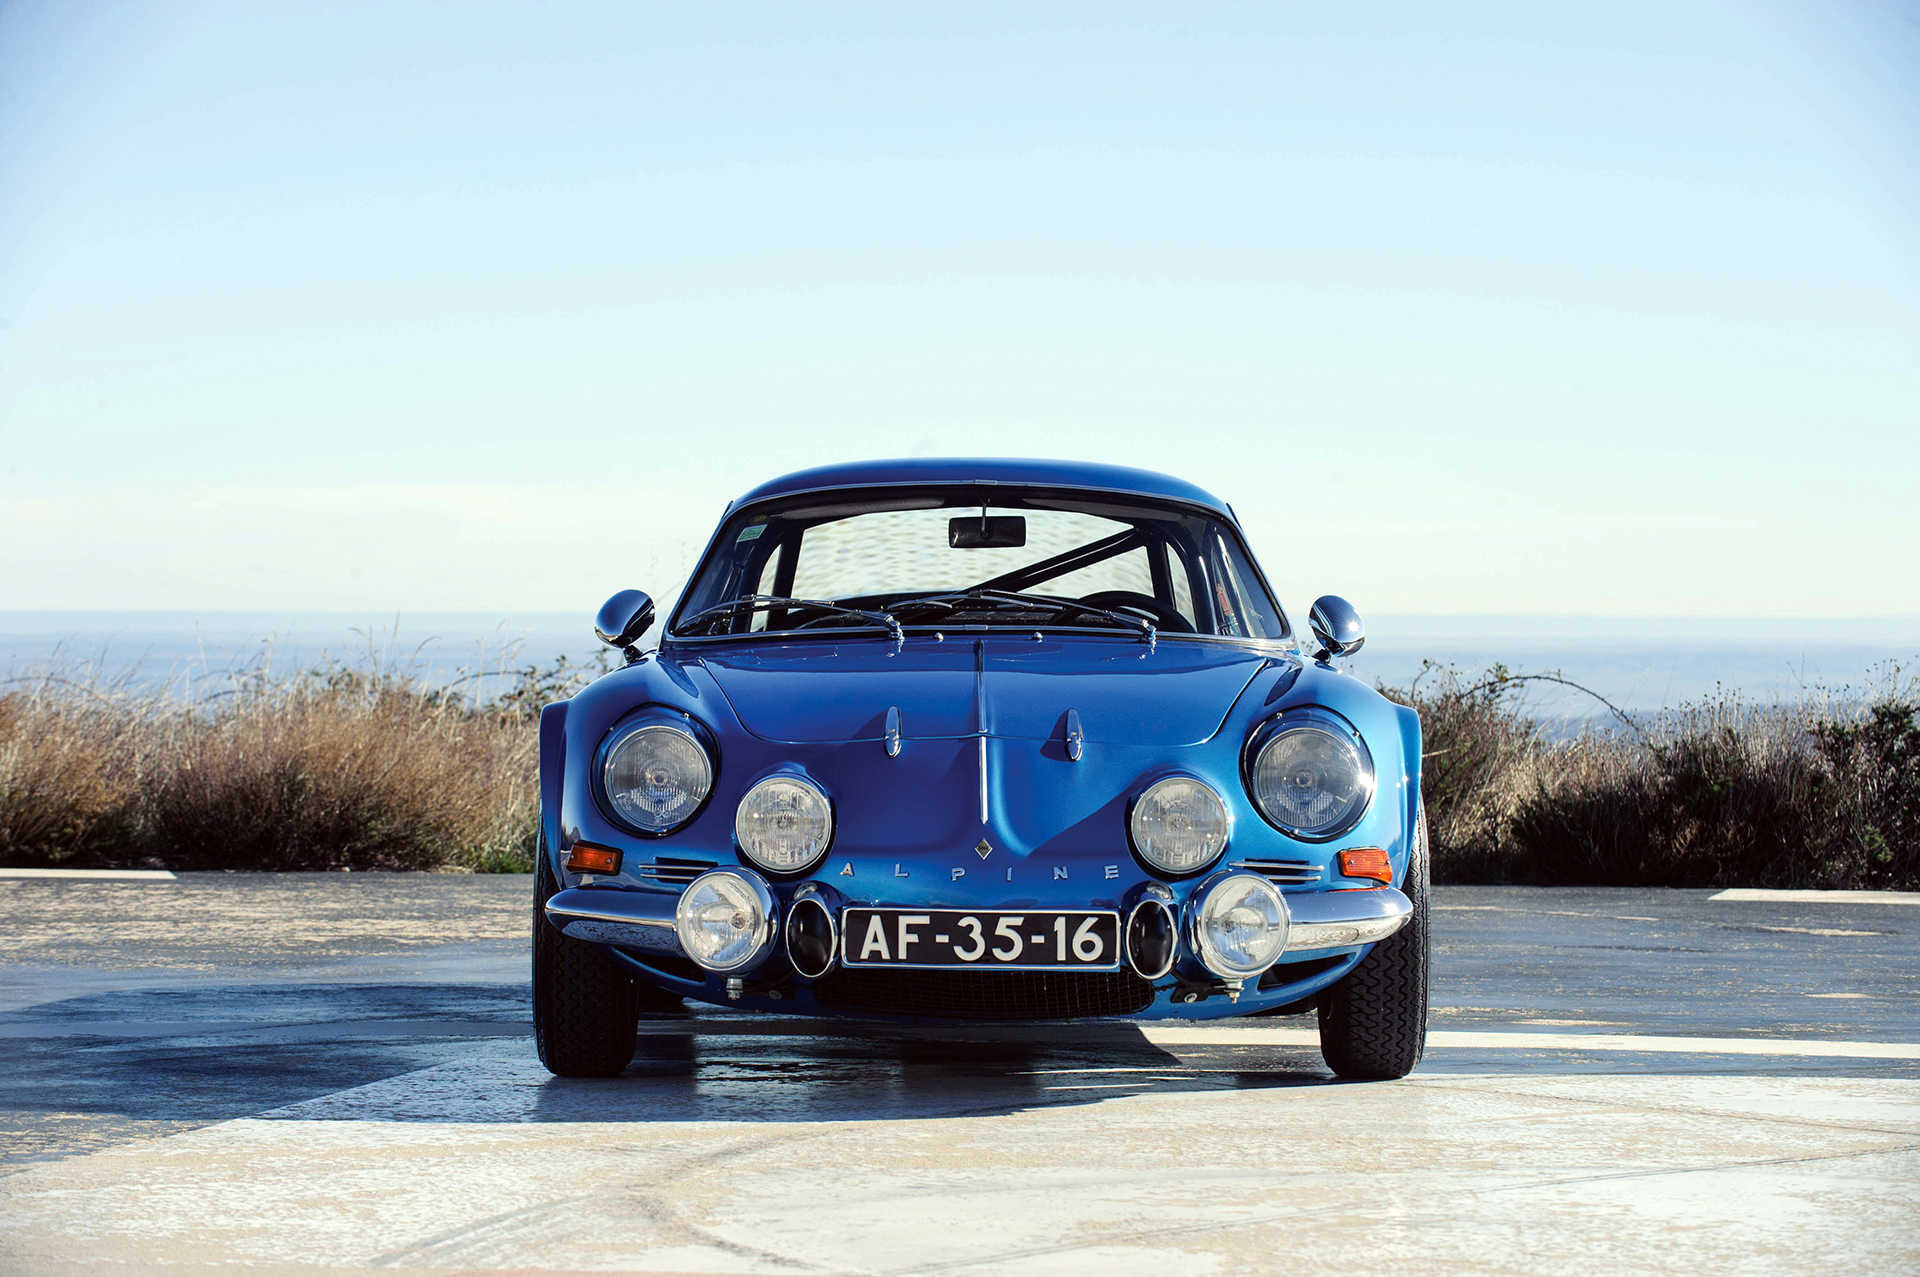 Alpine A110 1600S - avant / front - Photo Tom Wood 2015 Courtesy of RM Auctions